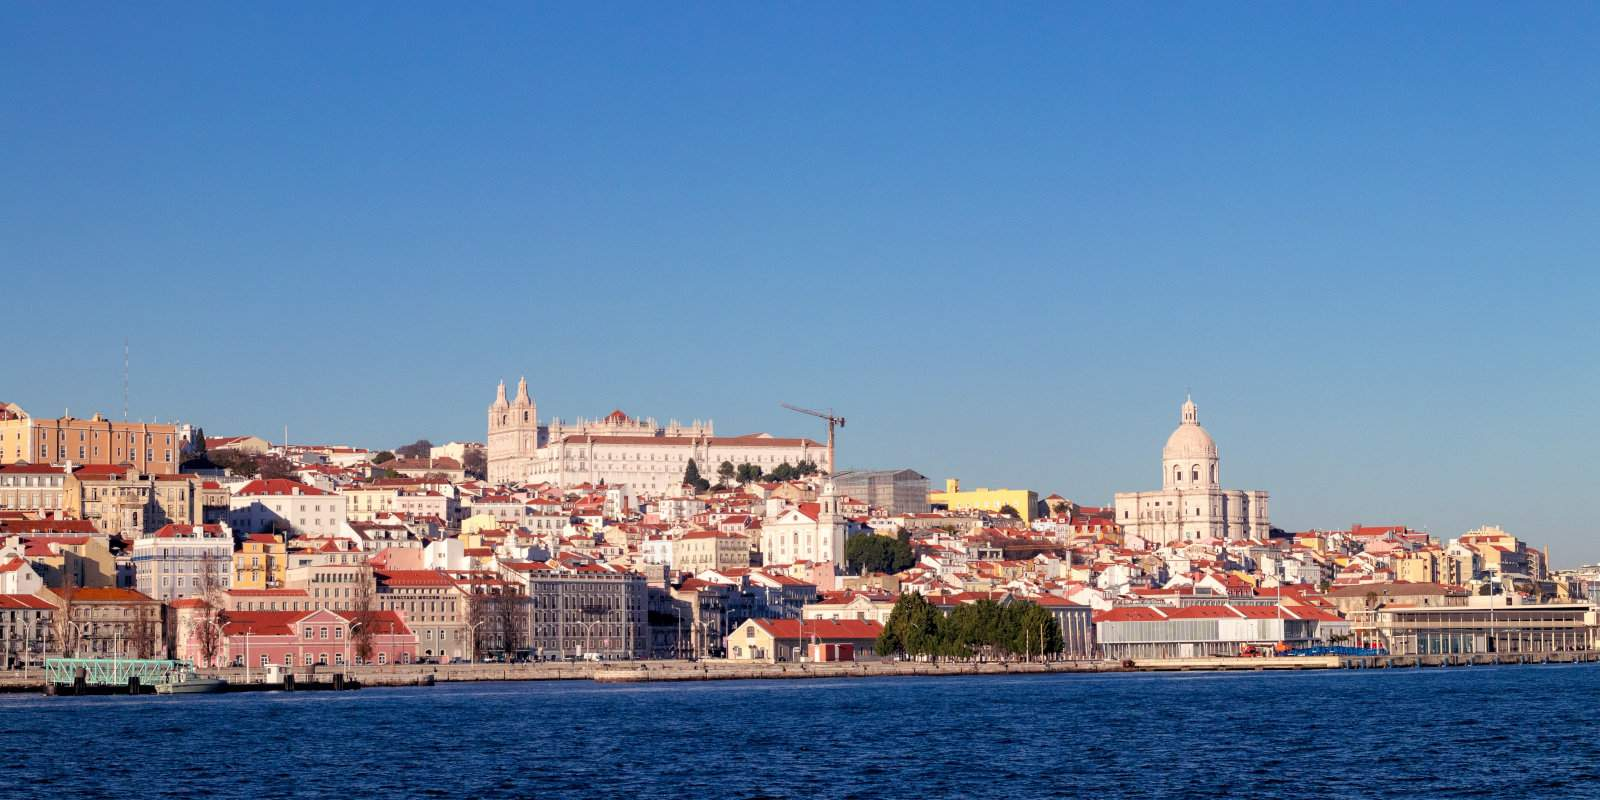 For great weather and a fun gay scene, head to Lisbon